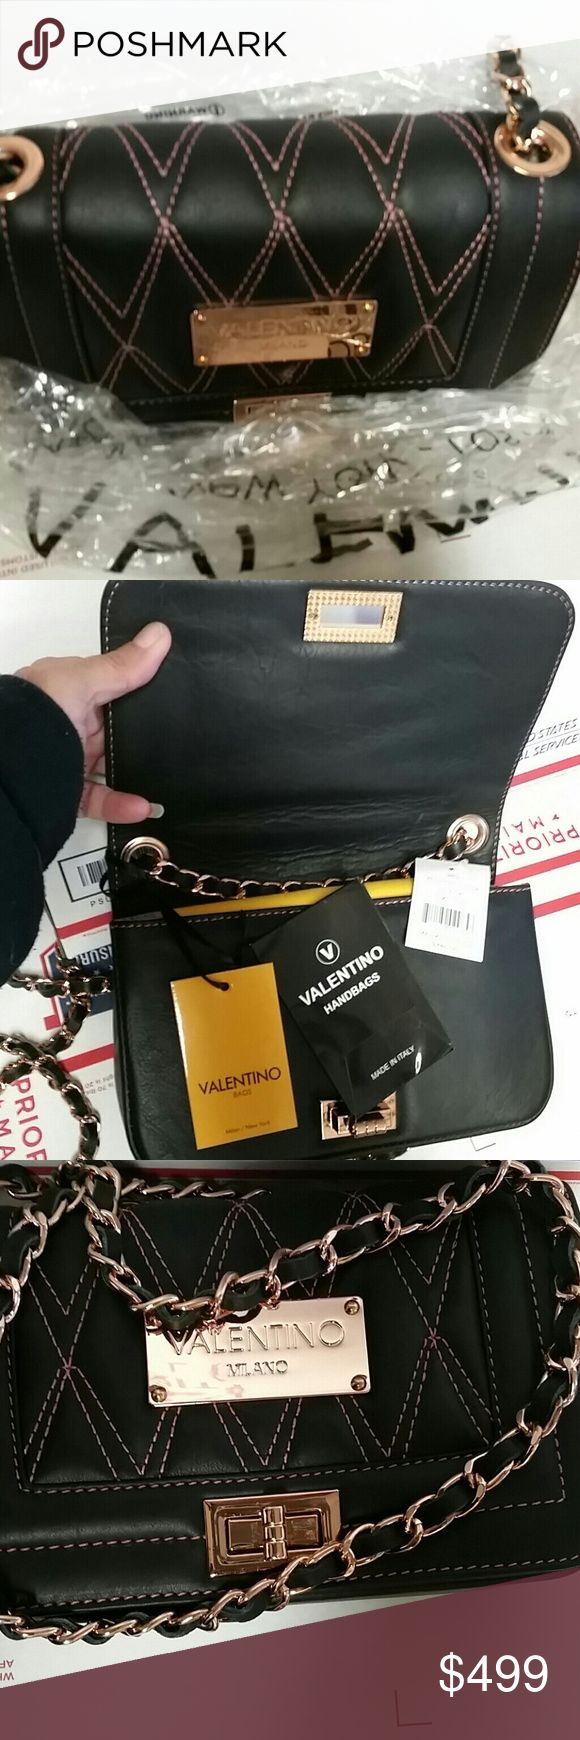 """1 DAY SALE! BNWT Valentino Milano w/pink stitching BRAND NEW WITH TAGS  AUTHENTIC VALENTINO MILANO  BLACK WITH PINK STITCHING  8"""" X 5"""" X2"""" BEAUTIFUL SHOULDER BAG  Comes with dust bag Valentino Bags Shoulder Bags"""